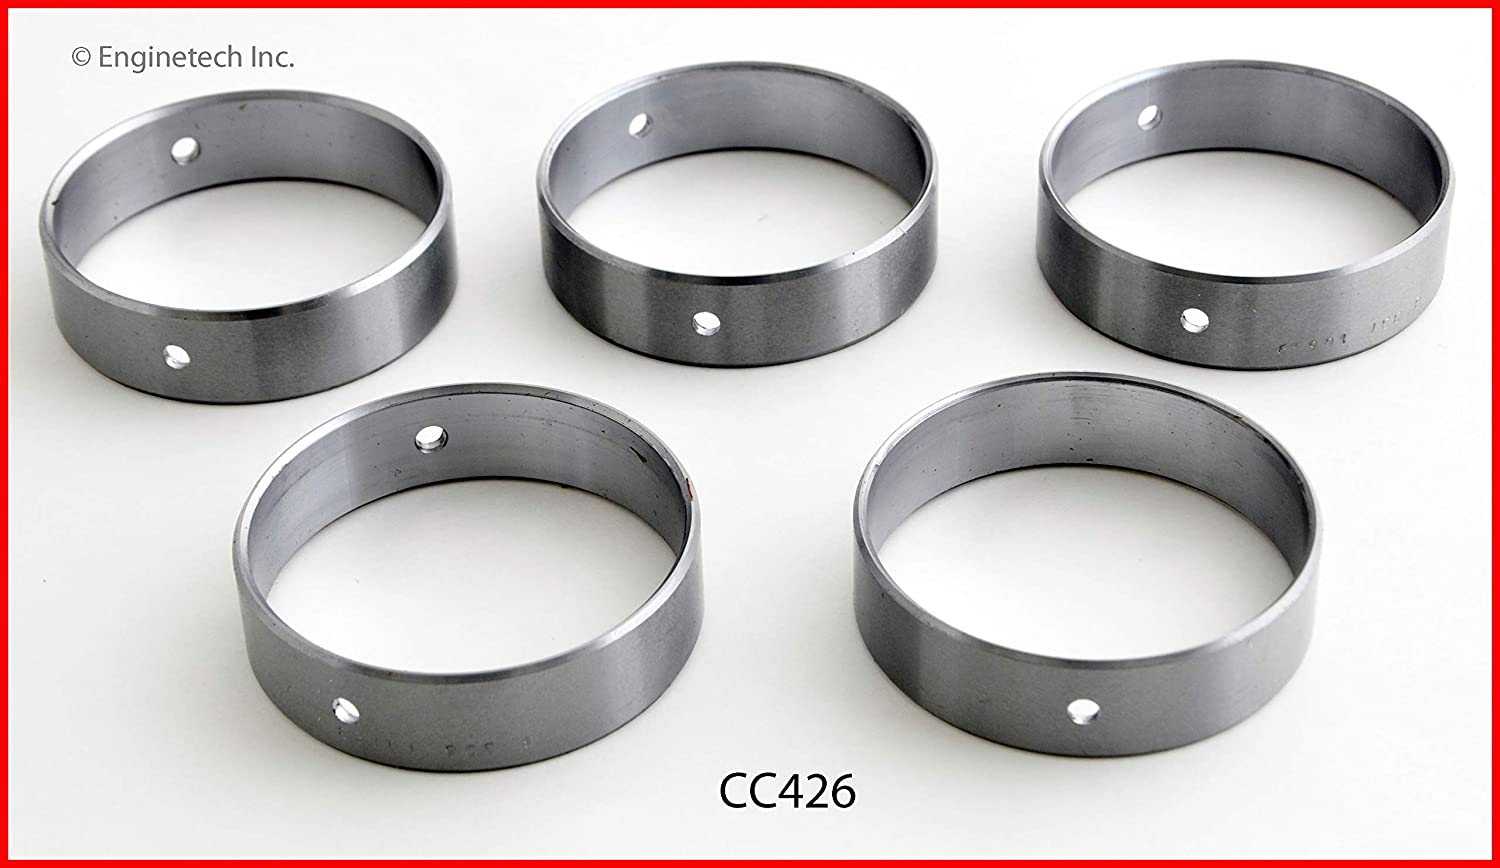 EngineTech CC426 Cam Bearings GM 4.8L 5.3L 5.7L 6.0L GEN III